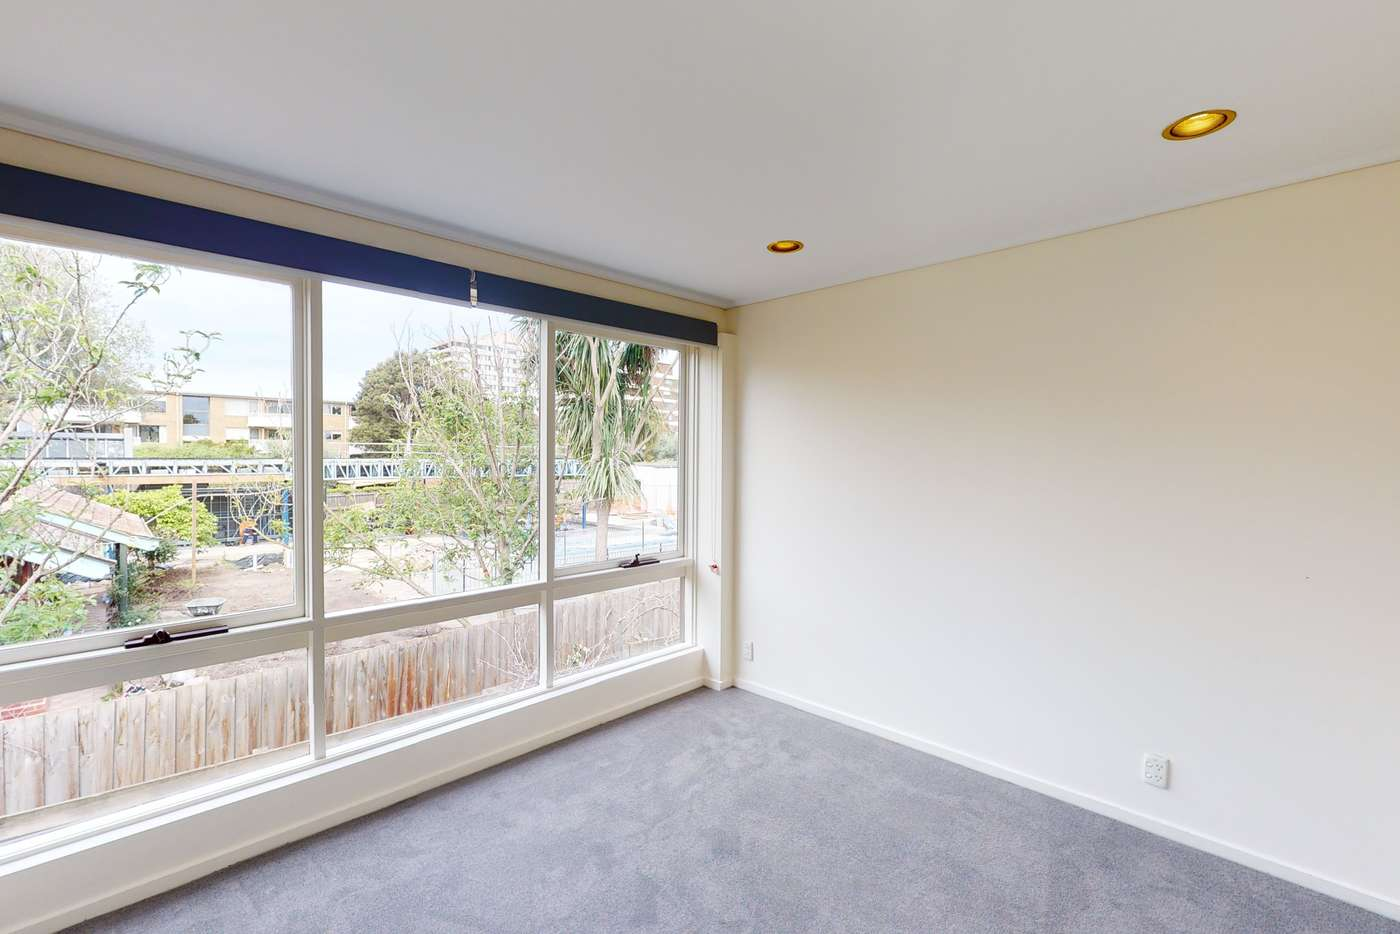 Sixth view of Homely townhouse listing, 13/517 Royal Parade, Parkville VIC 3052